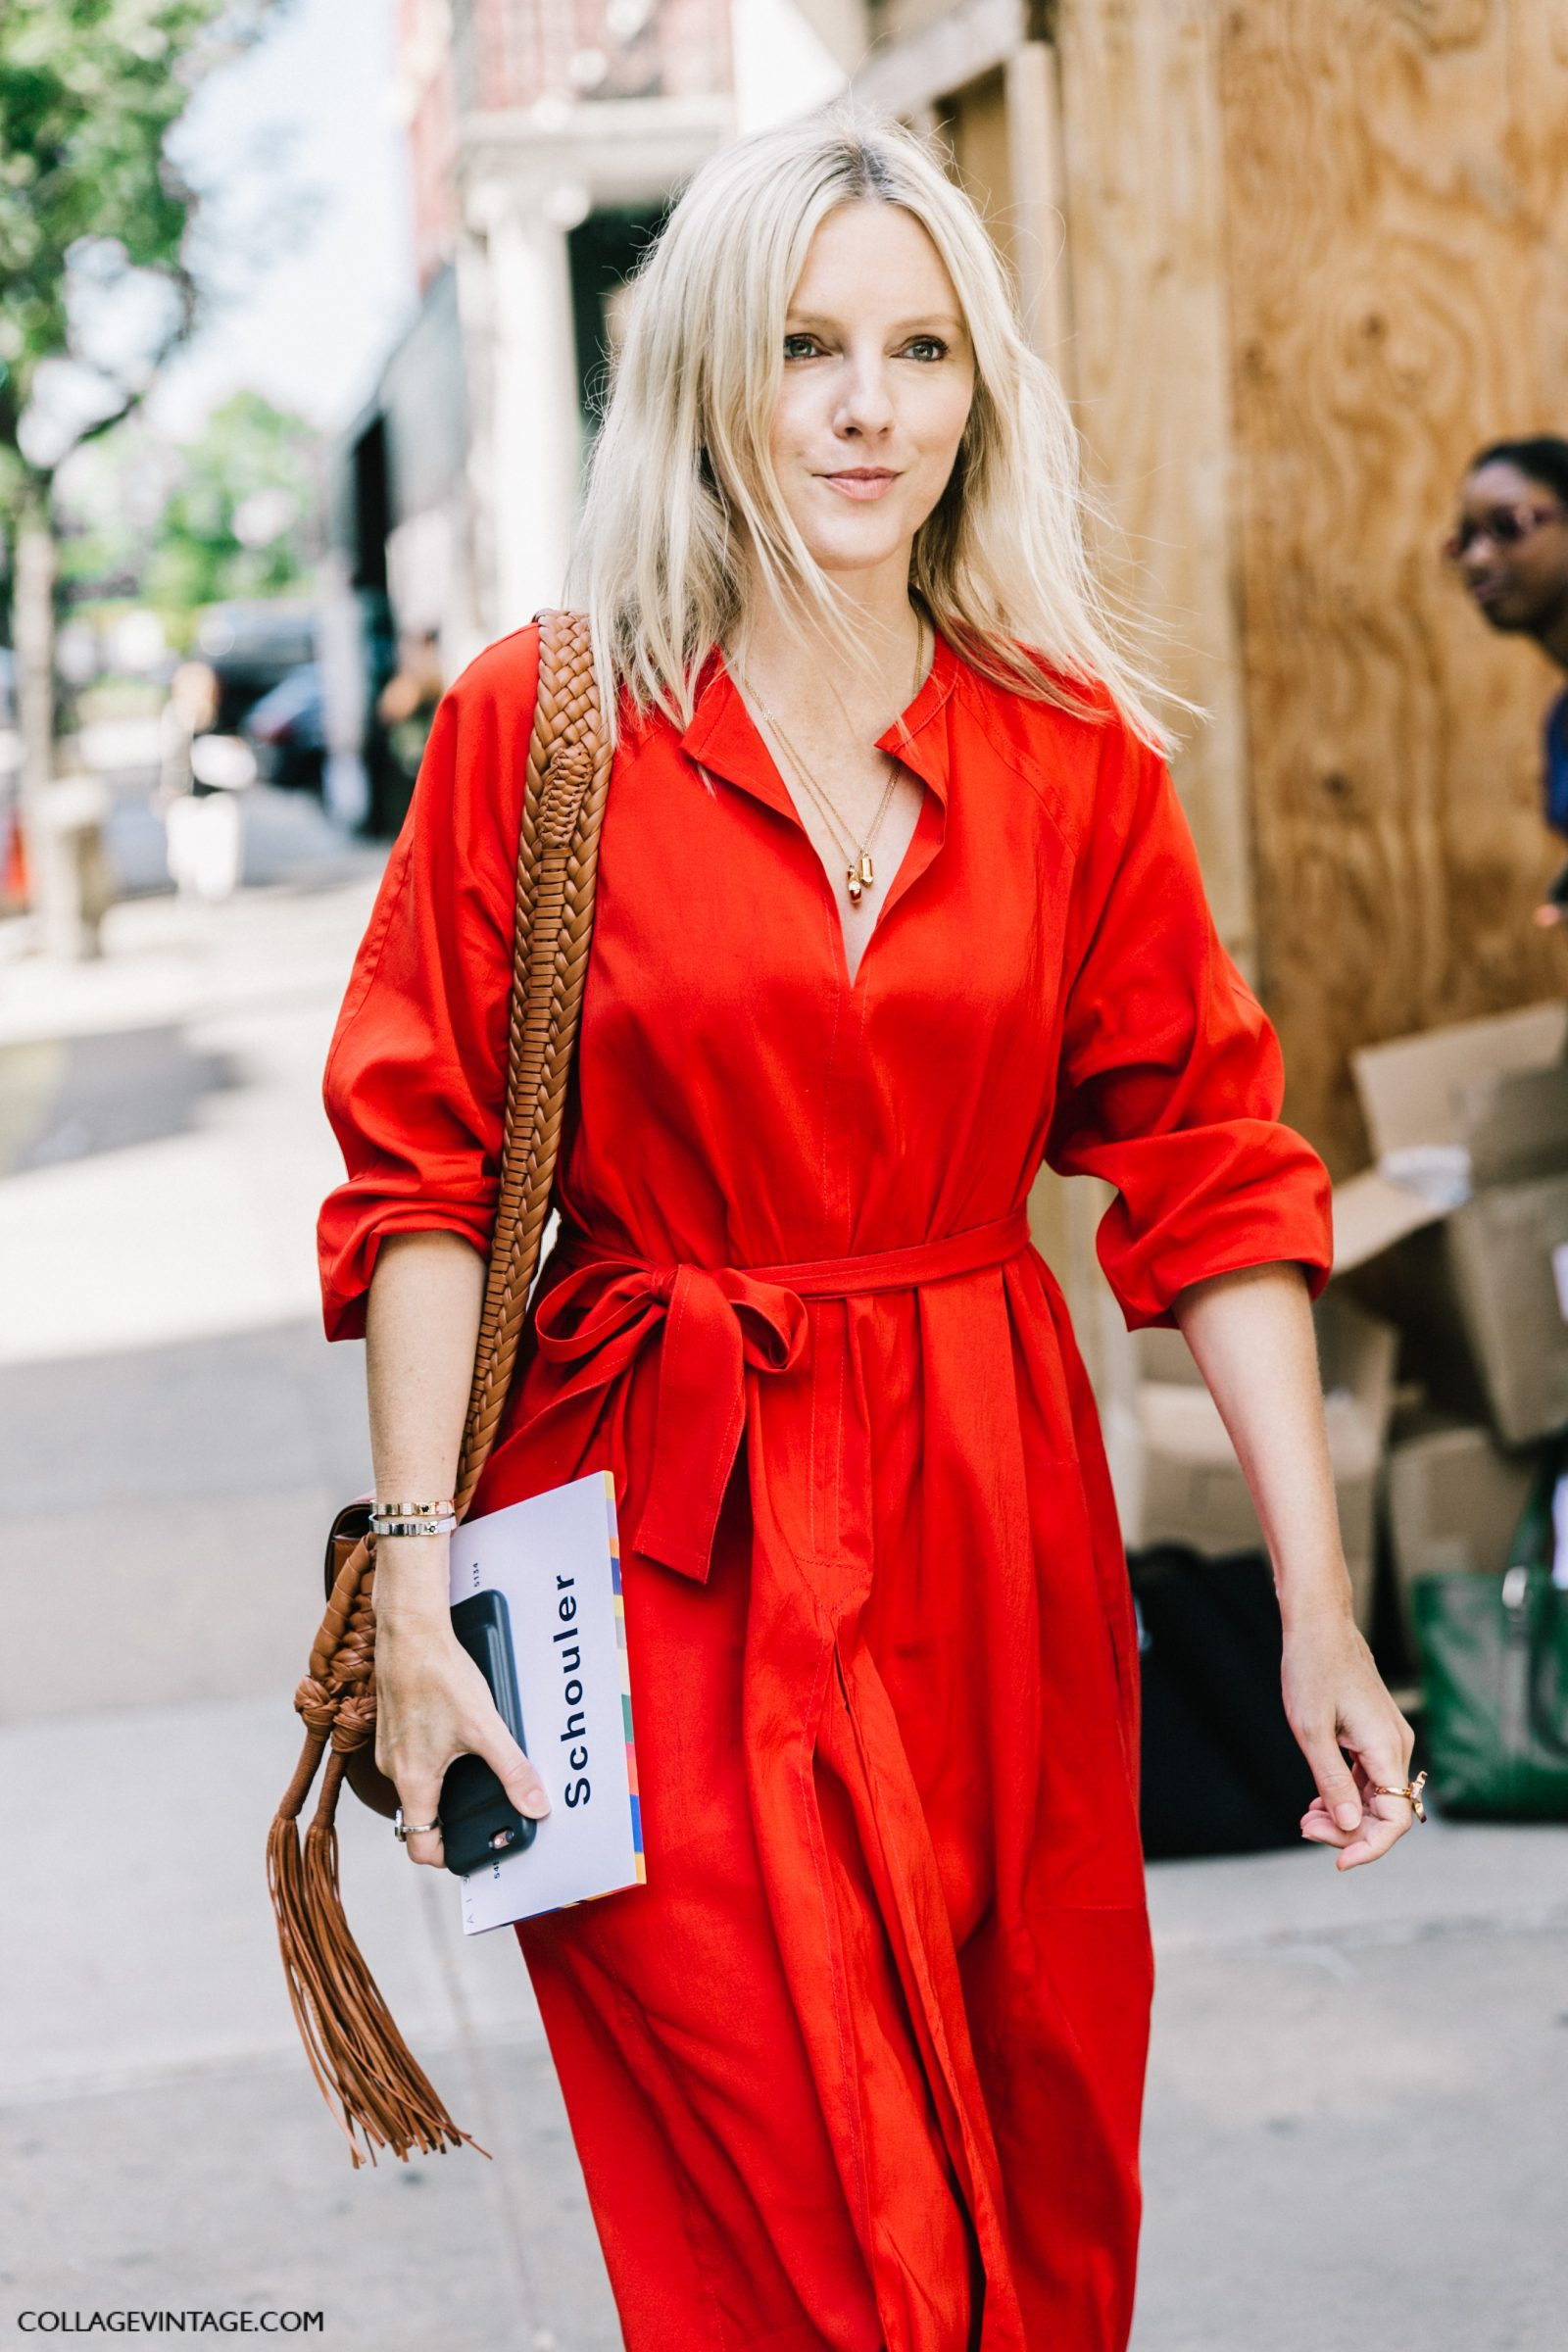 nyfw-new_york_fashion_week_ss17-street_style-outfits-collage_vintage-vintage-phillip_lim-the-row-proenza_schouler-rossie_aussolin-212